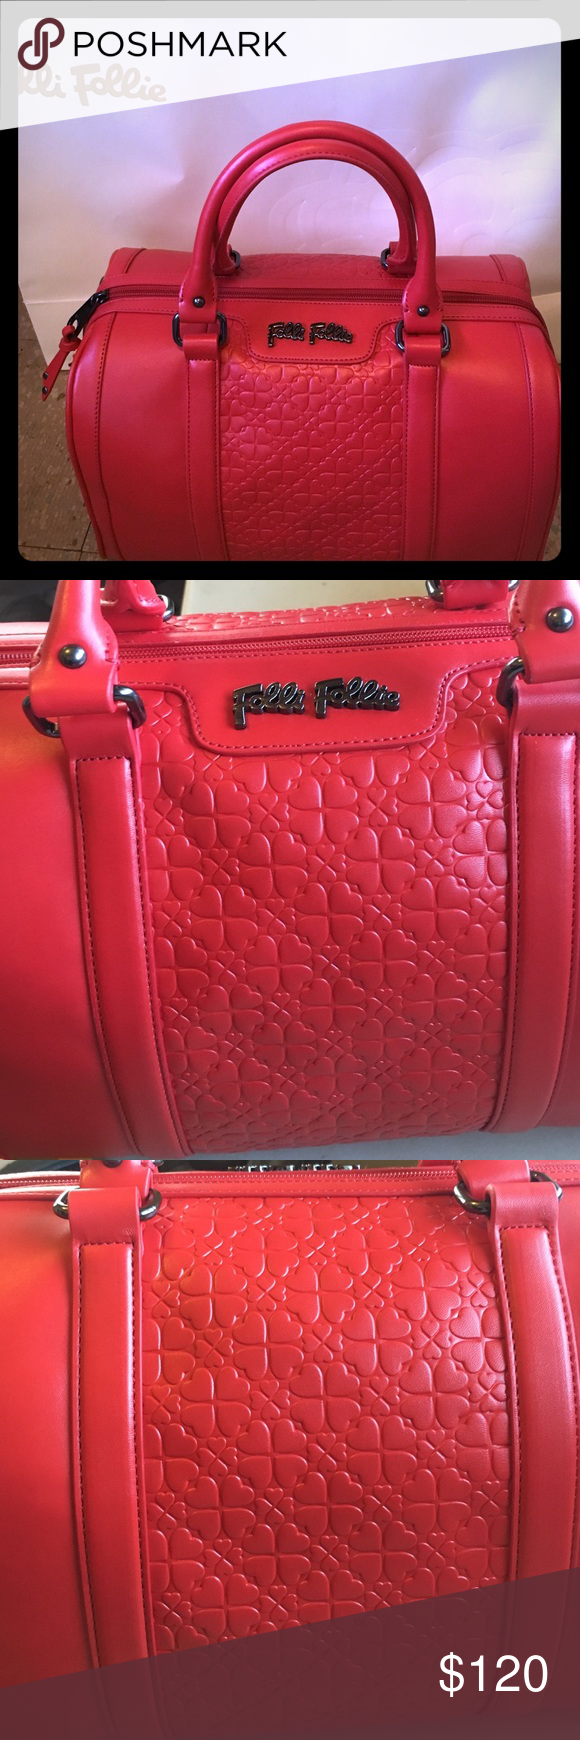 Folli Follie handbag New. Folli Follie satchel in red. New all tags on dust bag, shopping bag, 2016 collection. Size: 12 inches in length, 7 inches in length, 6 inches in width. Bag has never been used. Folli Follie Bags Satchels